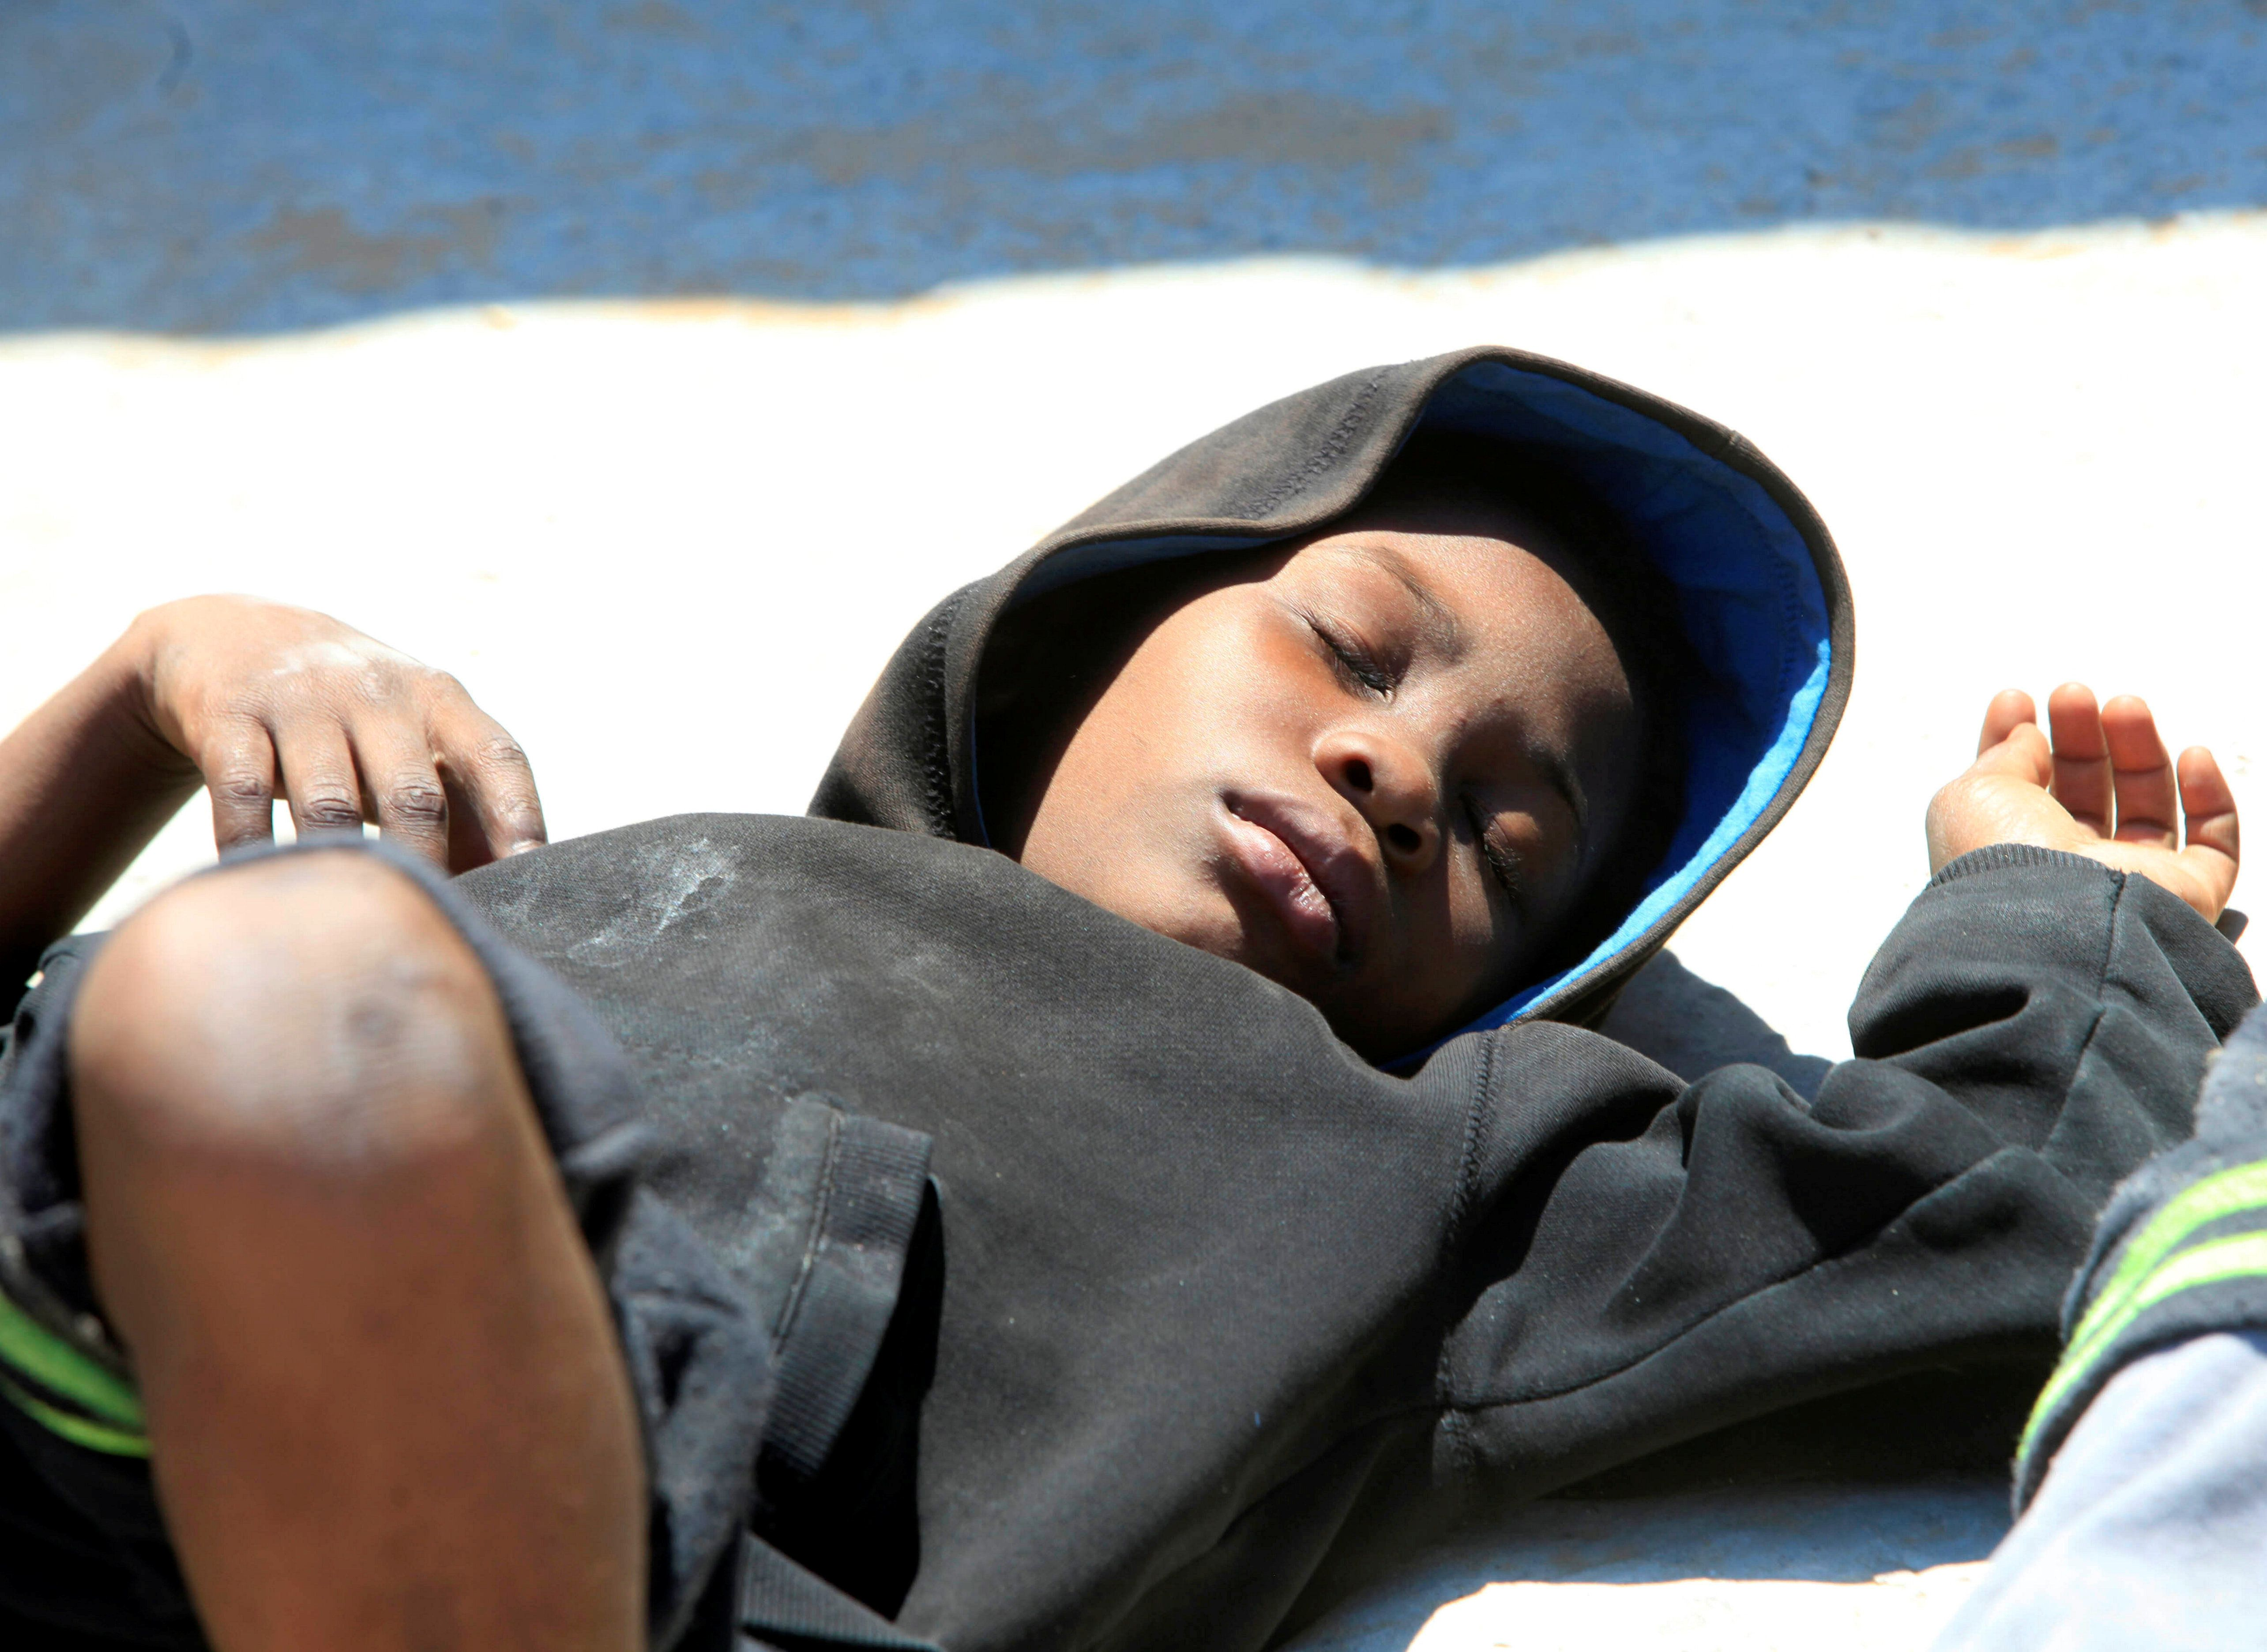 An illegal migrant sleeps at Gasr Garabulli port after he was rescued by Libyan Coast Guard, east of Tripoli, Libya, May 18, 2017. REUTERS/Ismail Zitouny